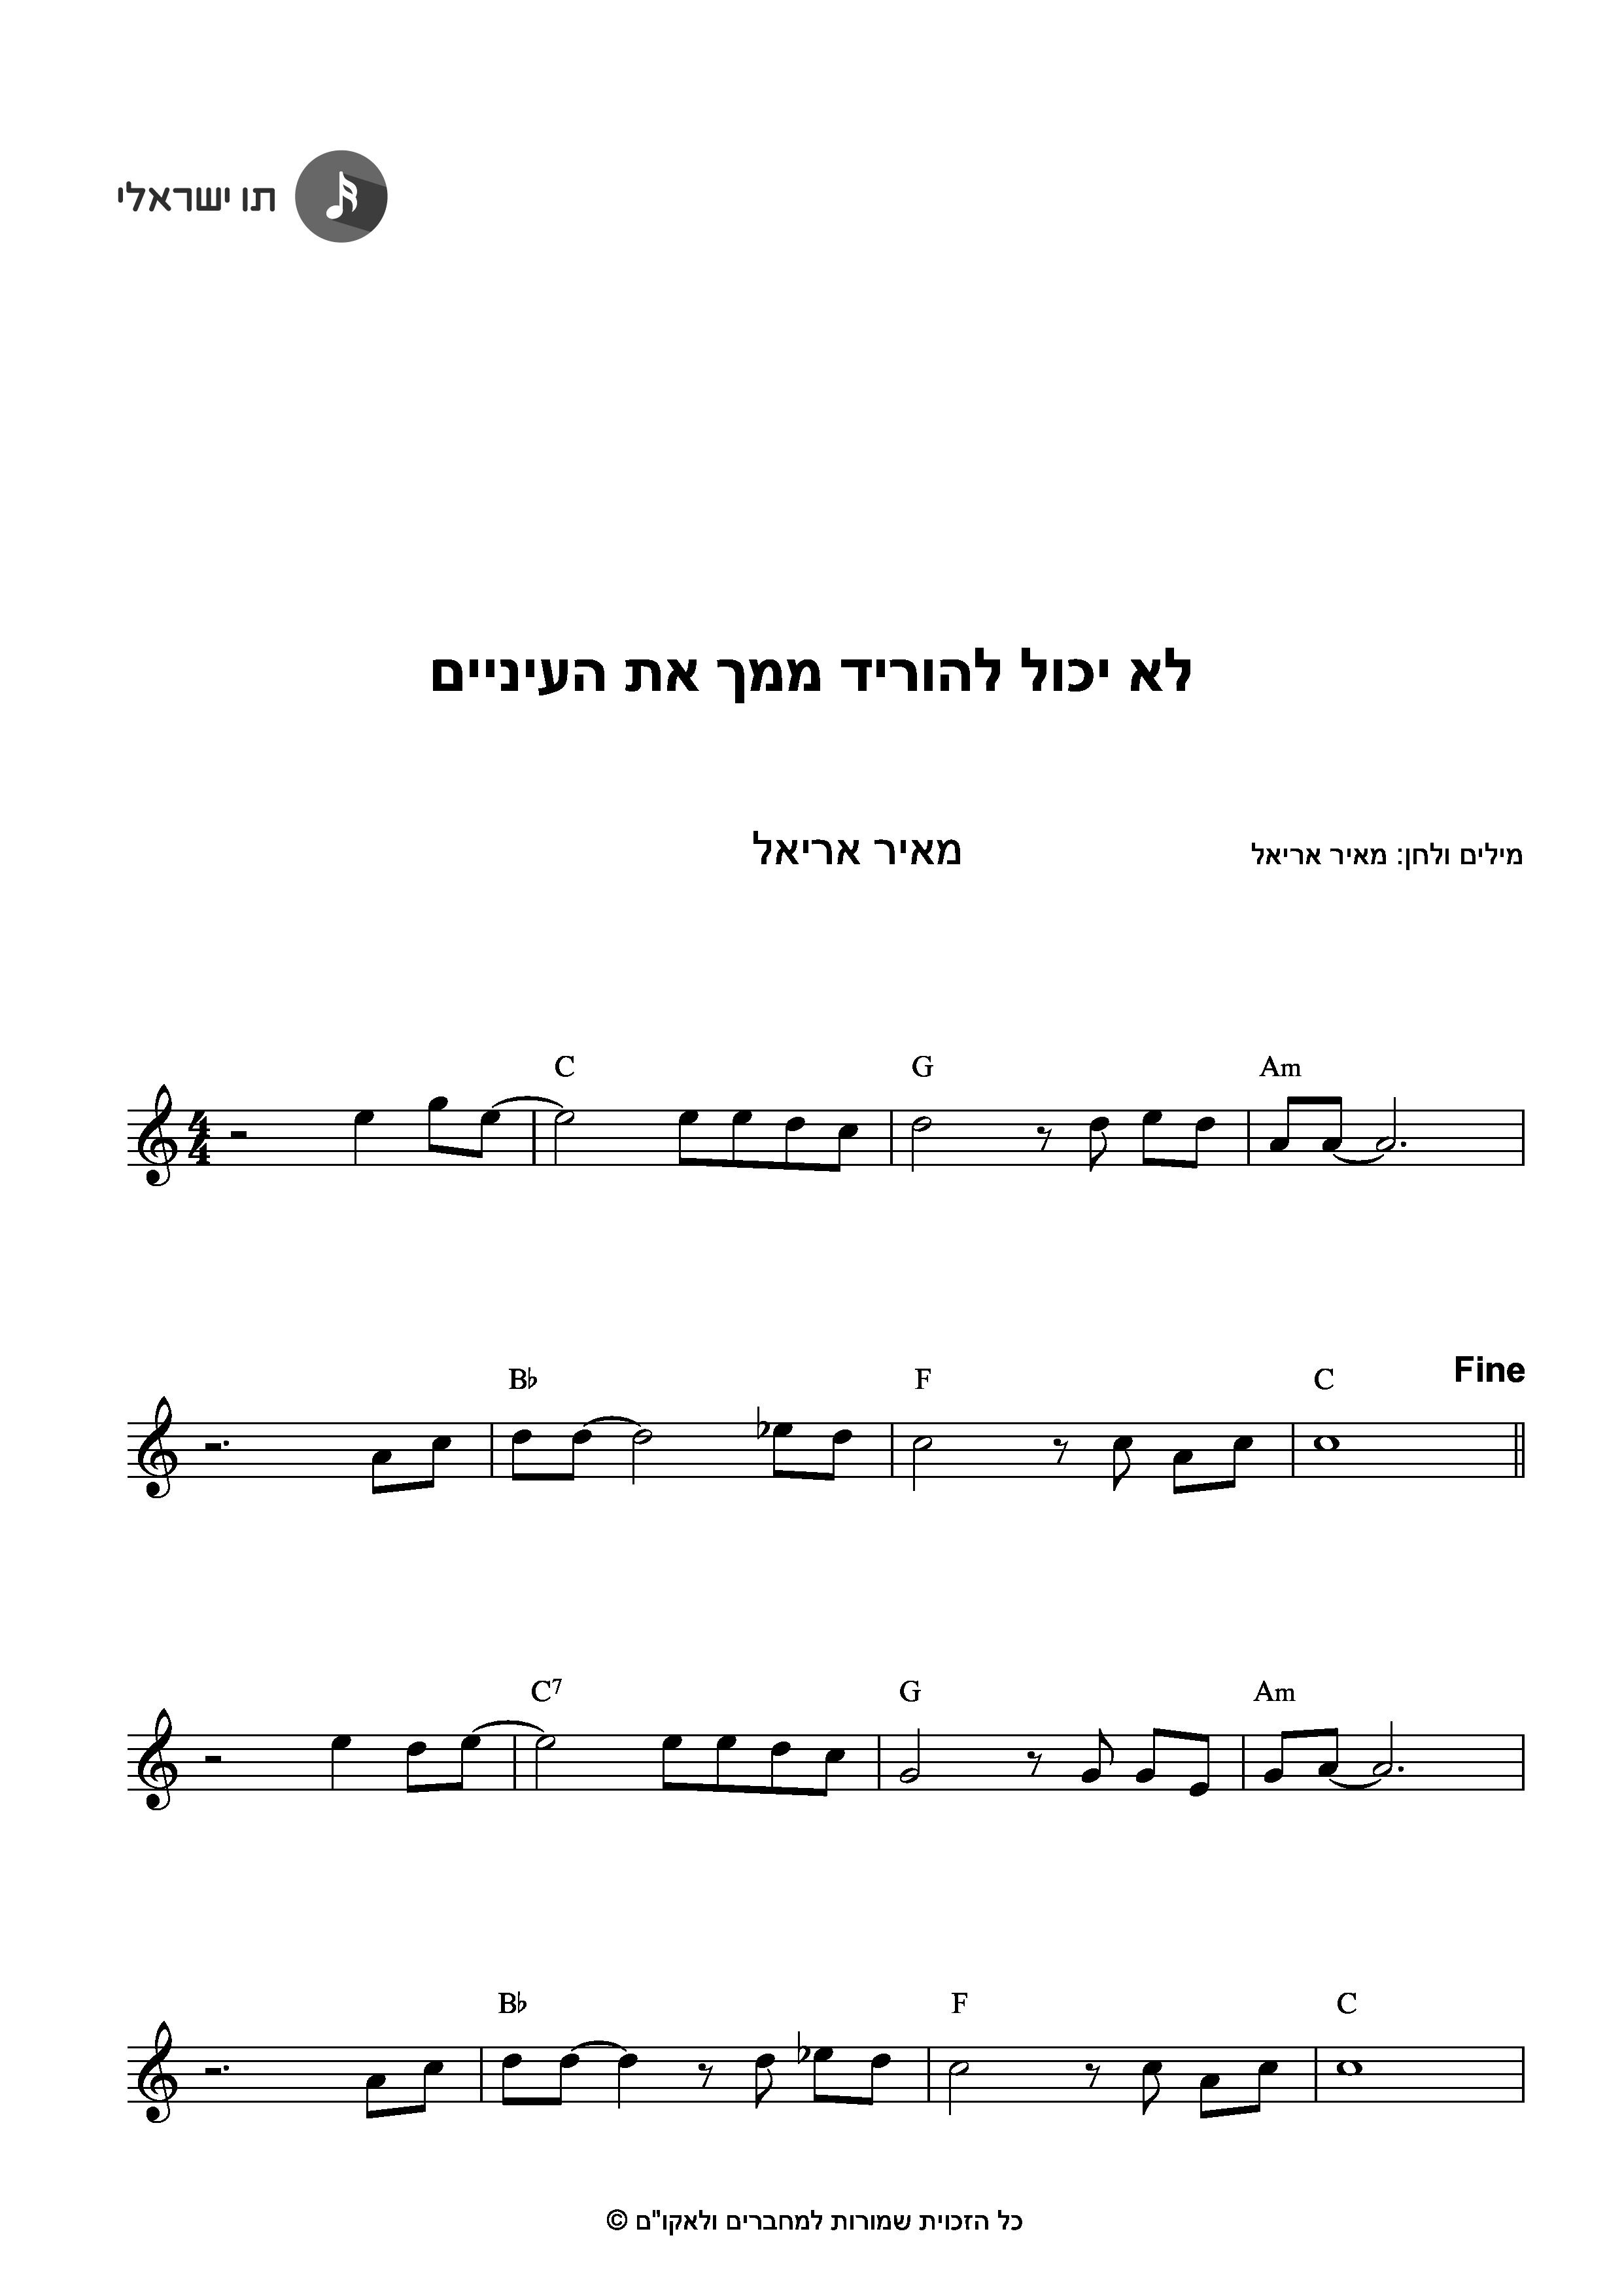 Pin by bat ami on תווים Songs, Sheet music, Flute